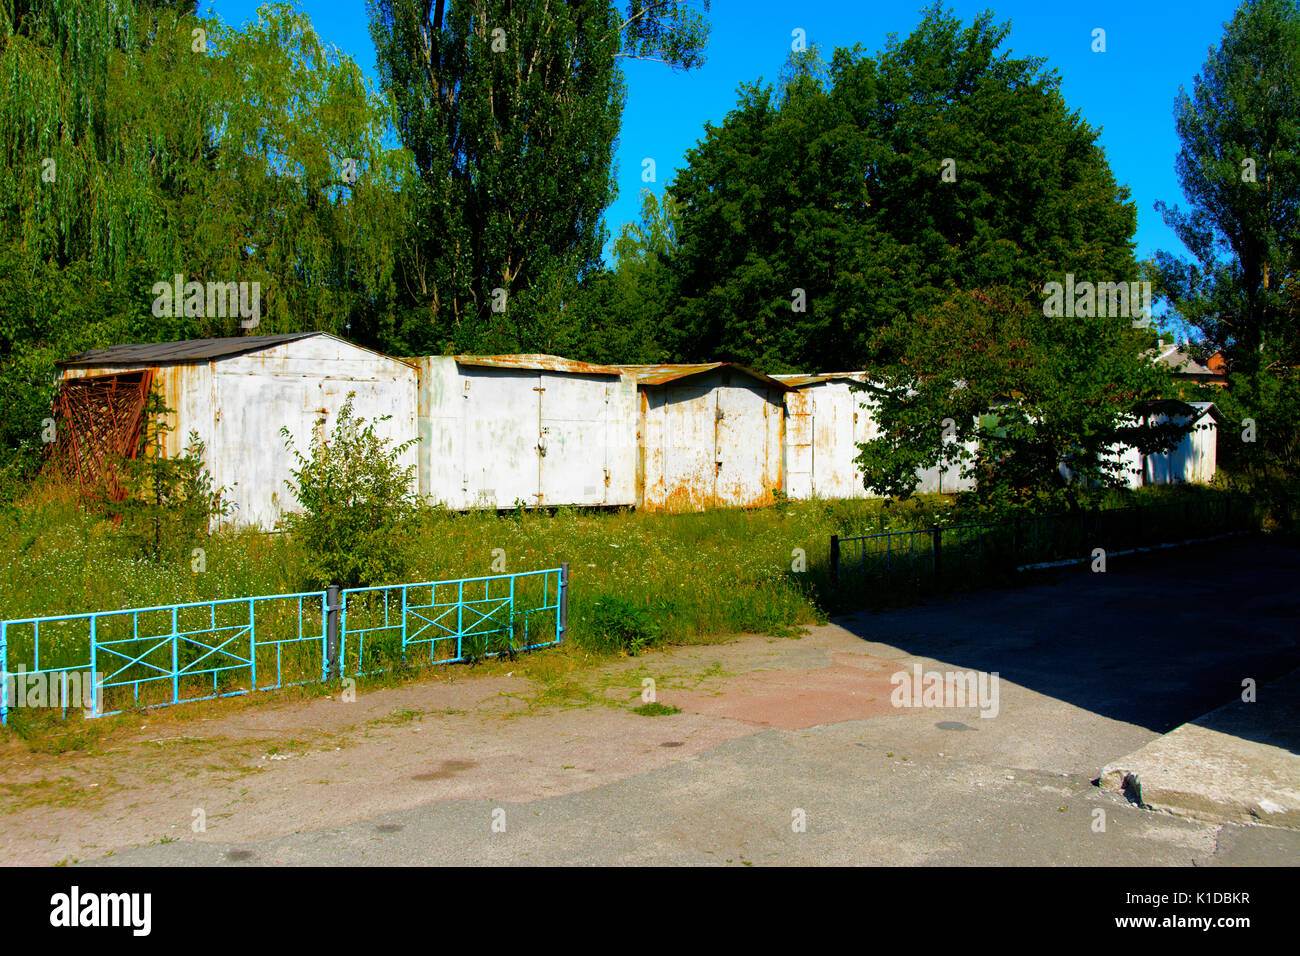 Old abandoned garages near houses. Dead radioactive zone. Consequences of the Chernobyl nuclear disaster, August 2017 - Stock Image